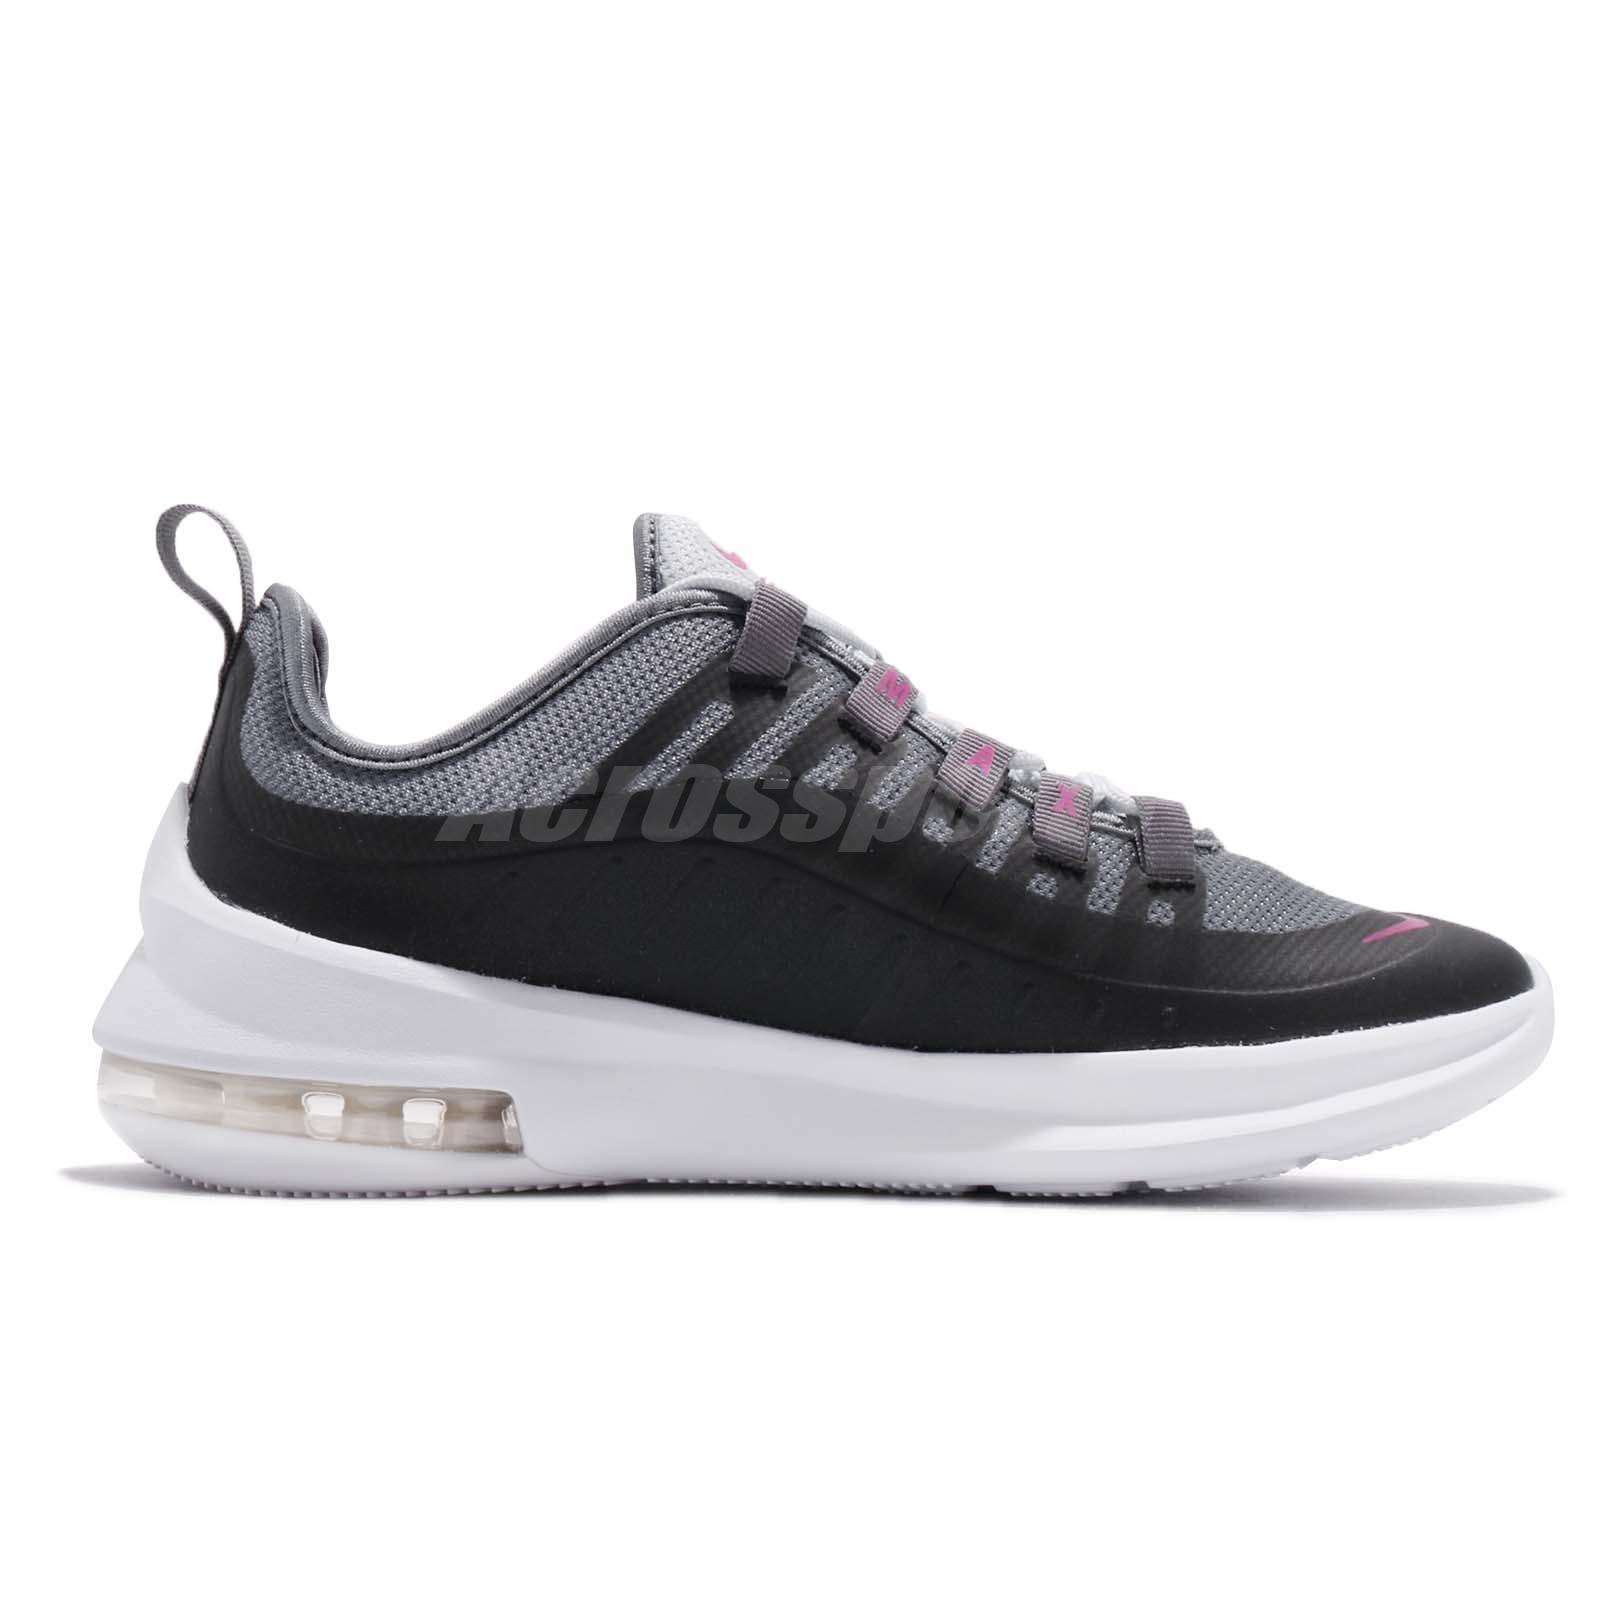 8b7789d003 Nike Air Max Axis GS Black Pink Kid Youth Women Running Shoes ...